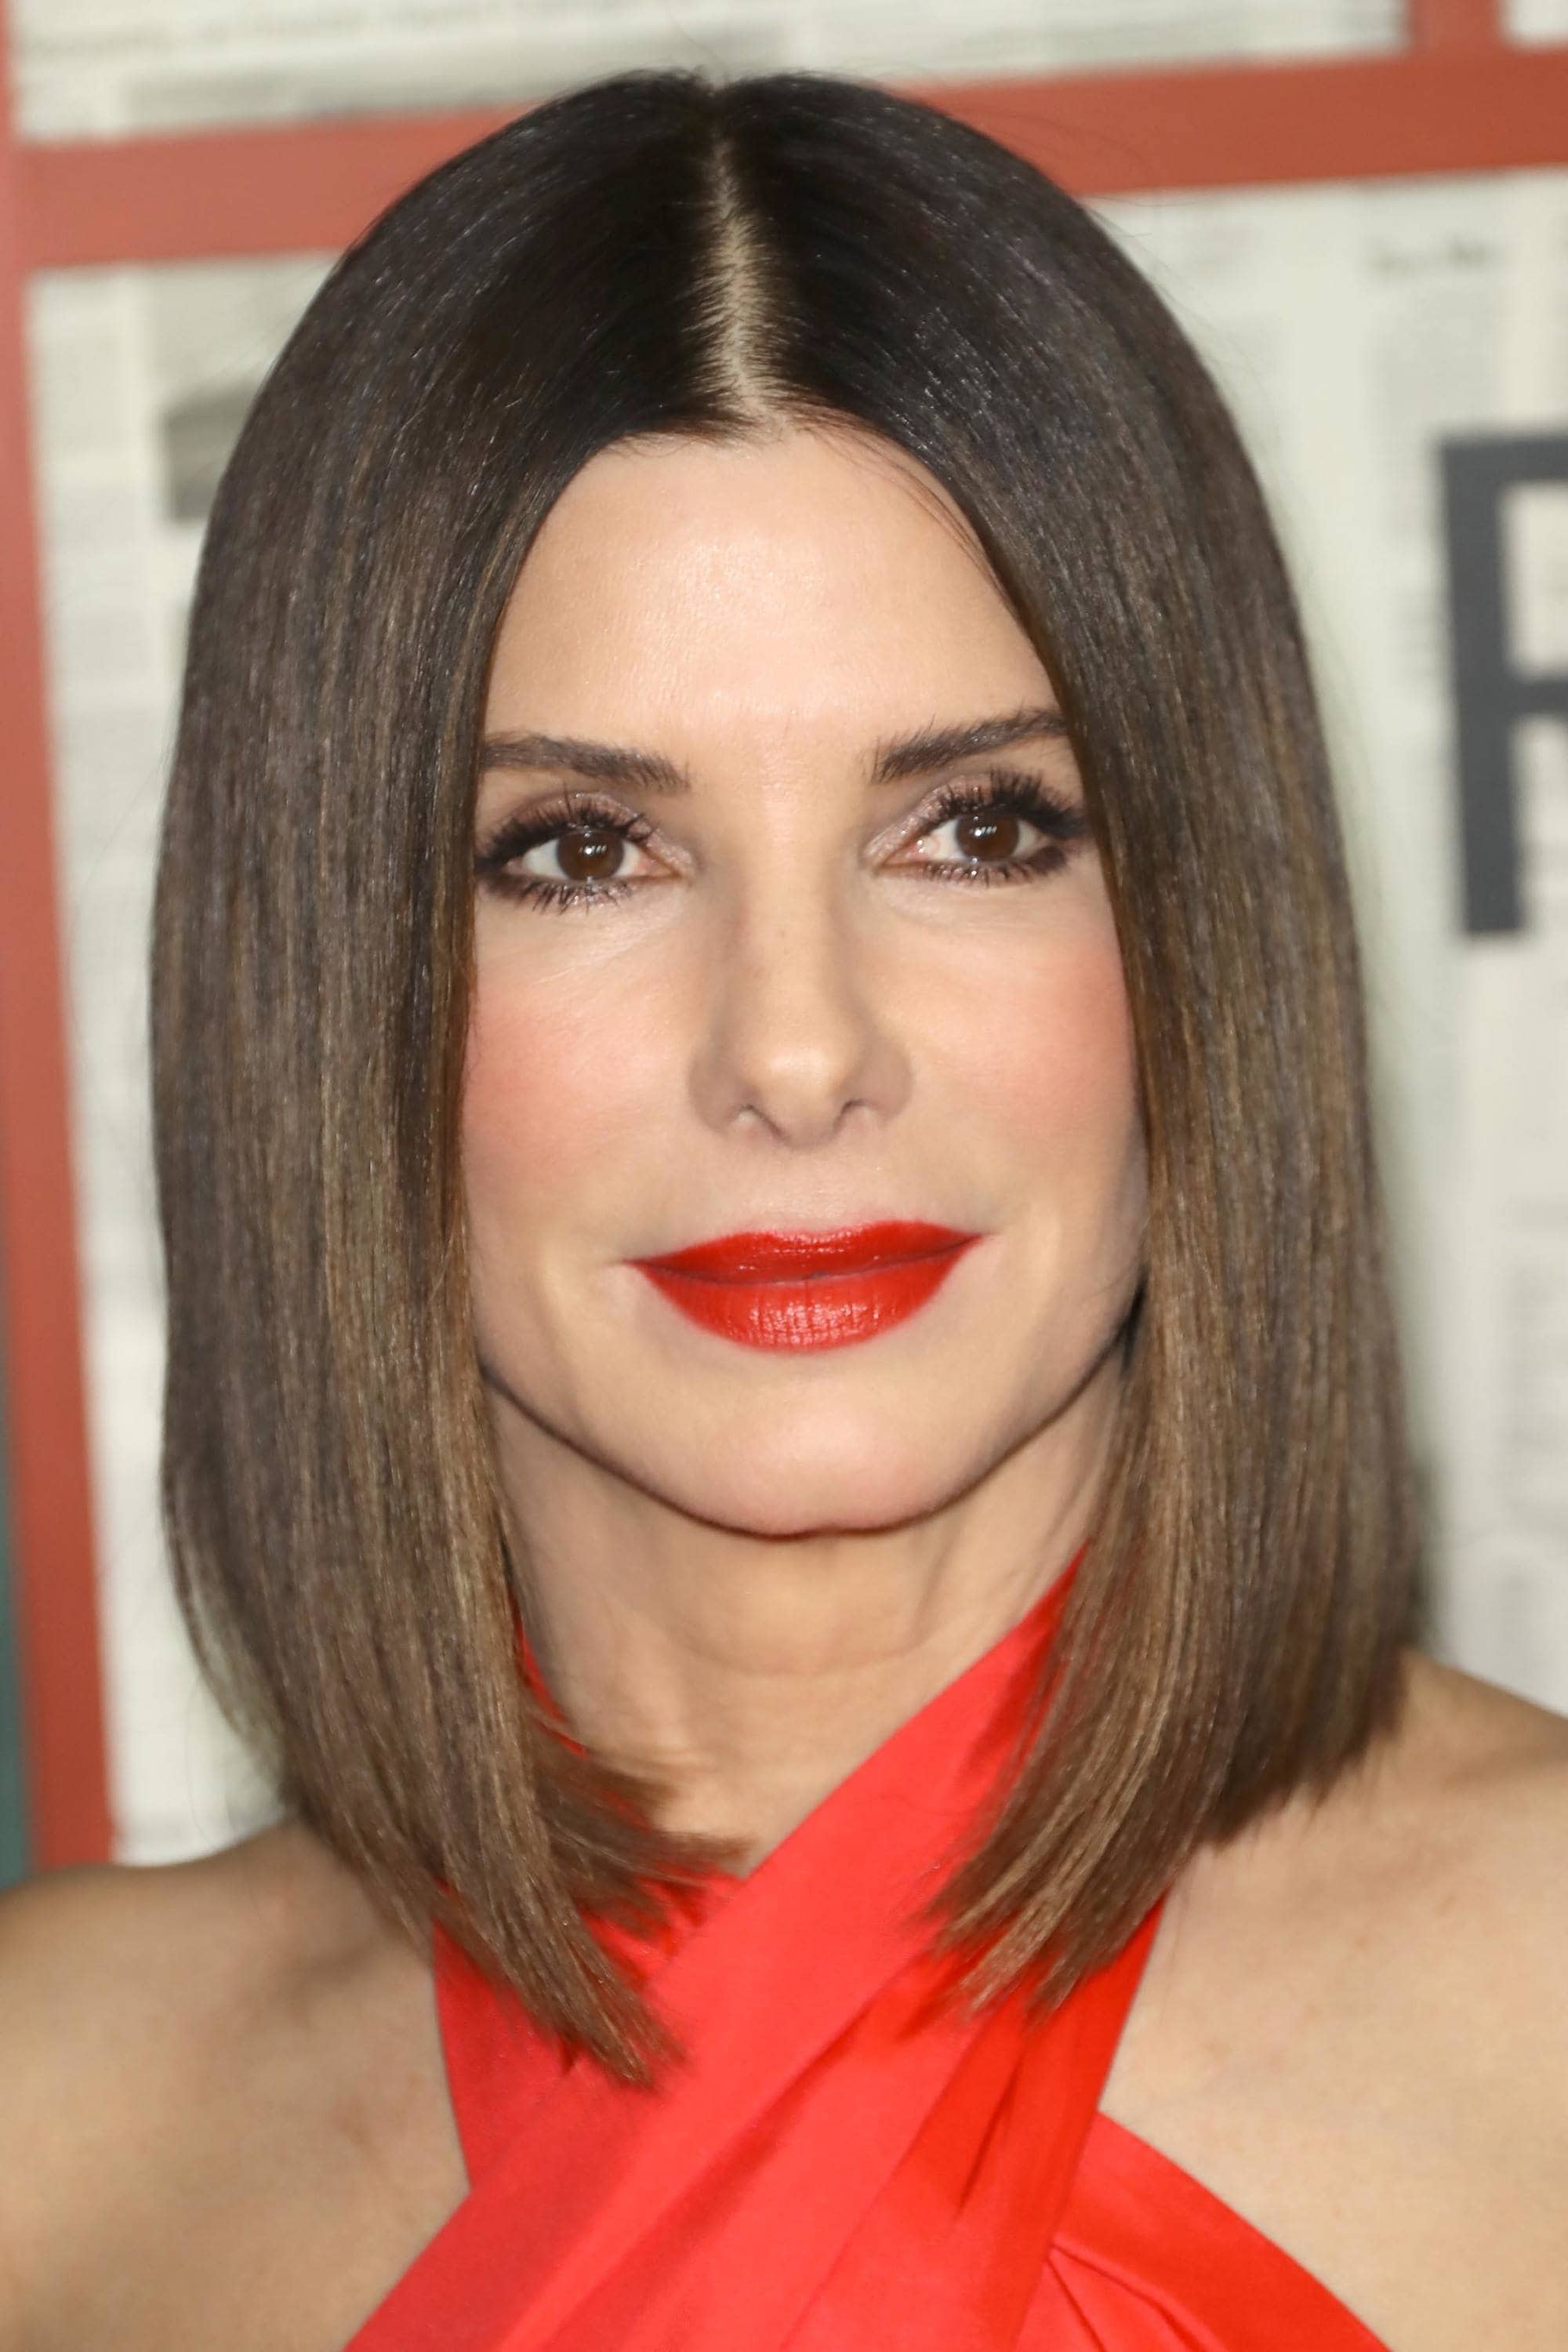 Medium hairstyles for thick hair: Sandra Bullock with a sleek straight A-line bob, wearing red lipstick and a red halterneck dress